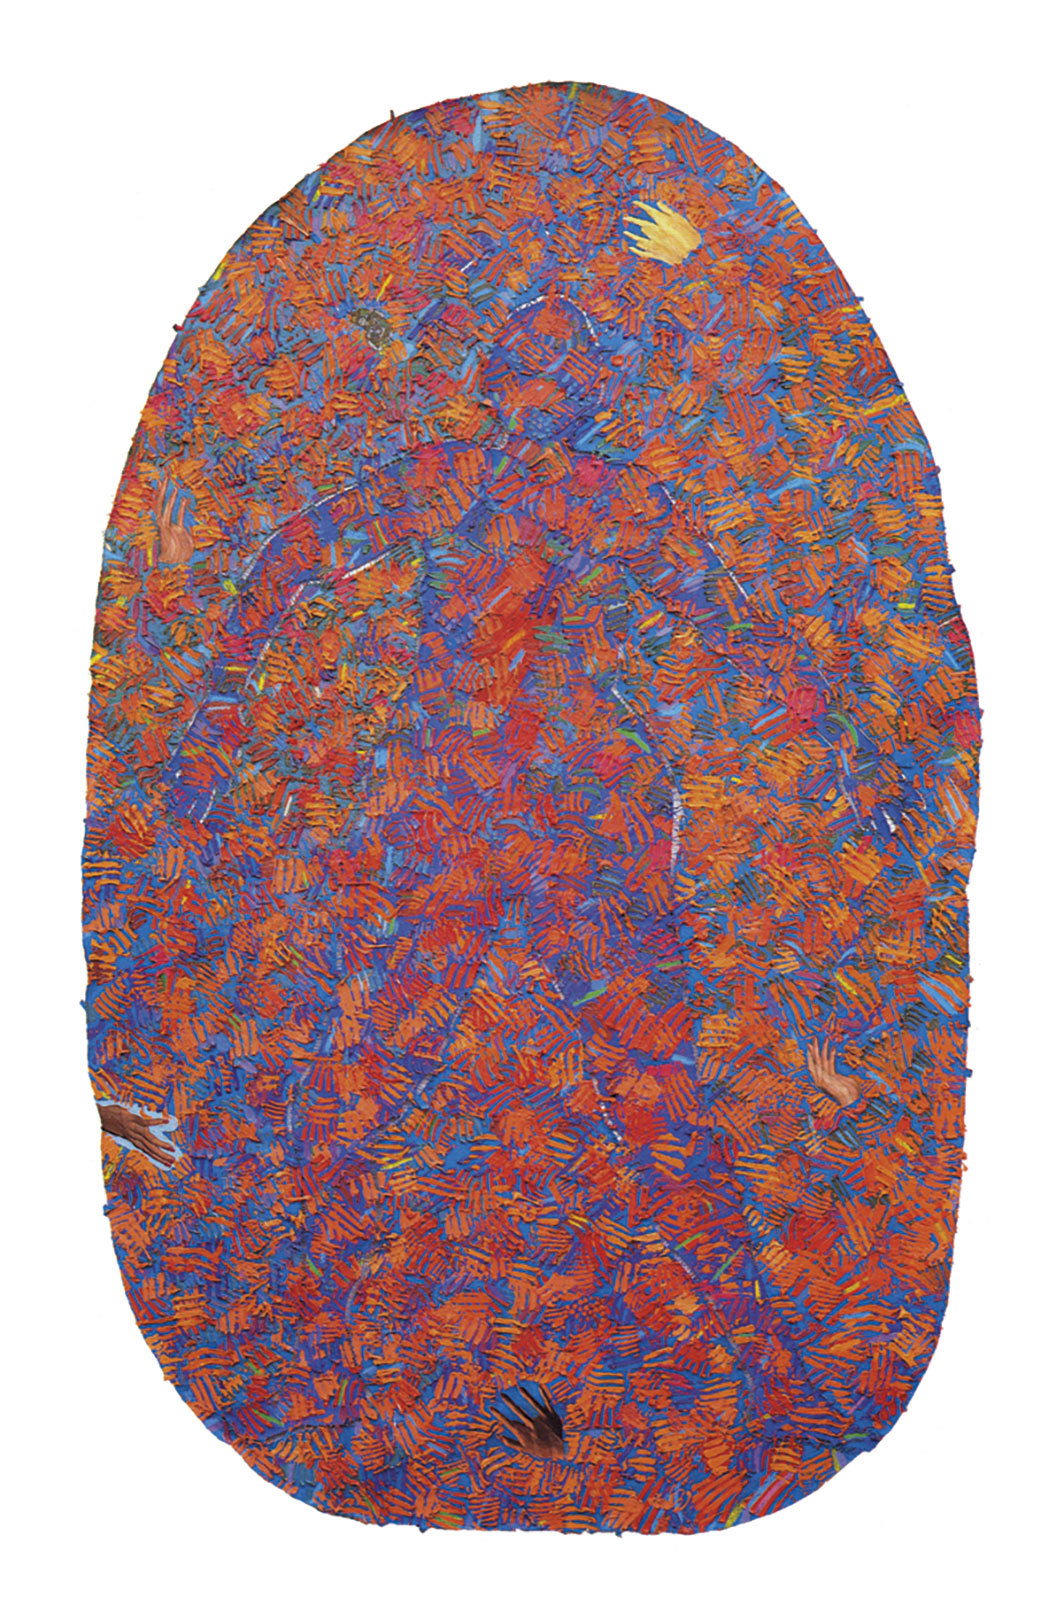 "Howardena Pindell, Autobiography: Fire (Suttee), 1986–87, mixed media on canvas, 90 × 56""."